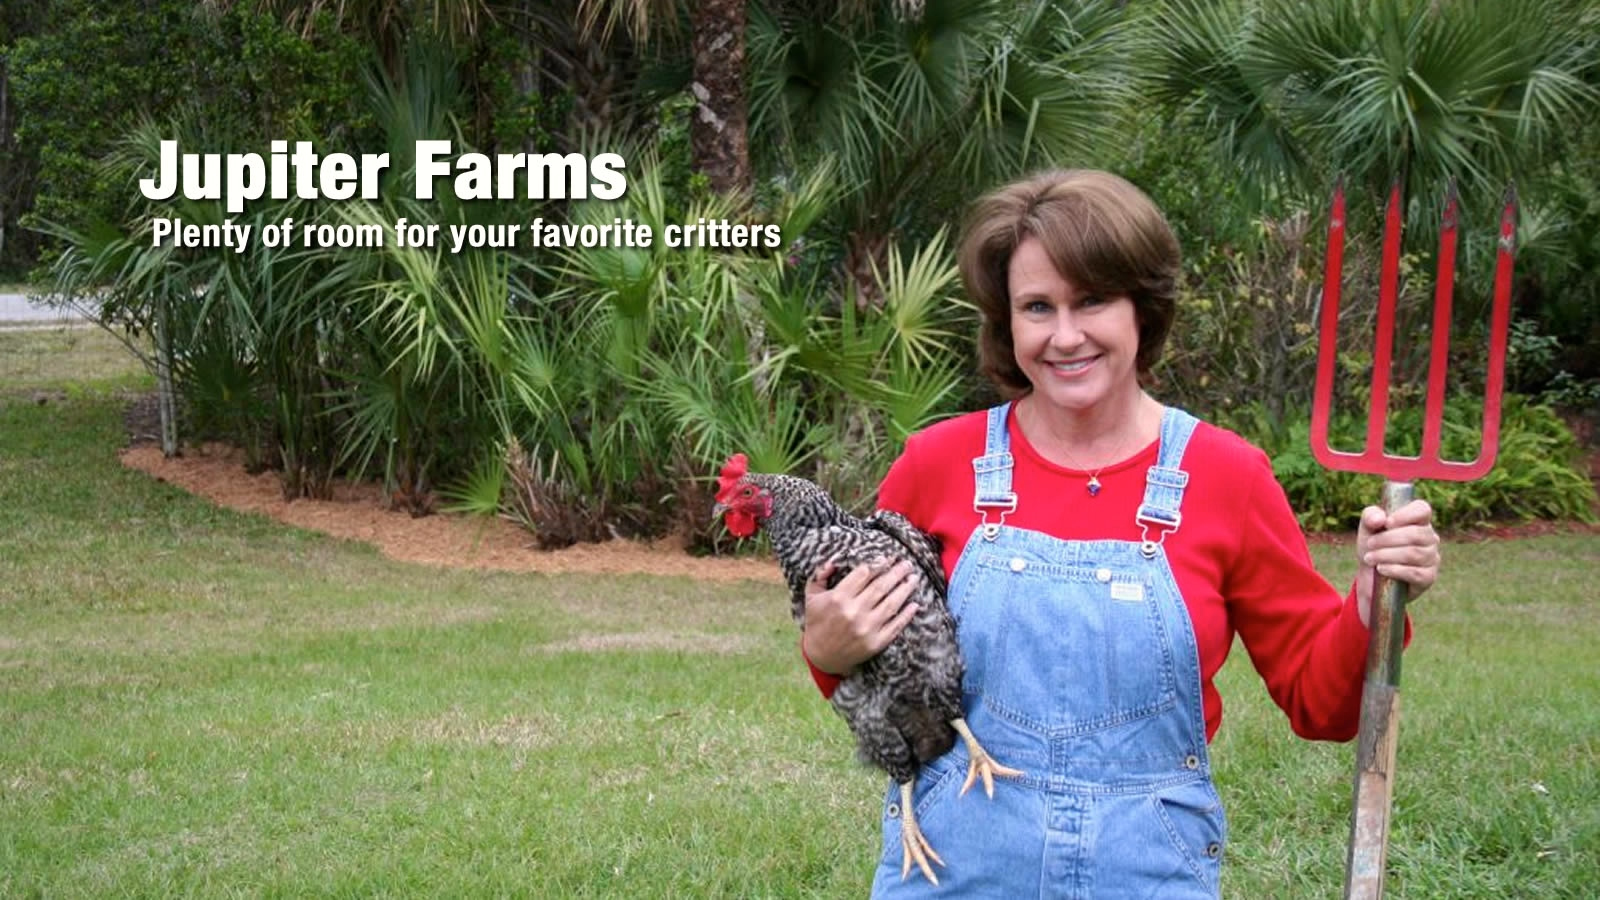 Raising Chickens in Jupiter Farms Neighborhood